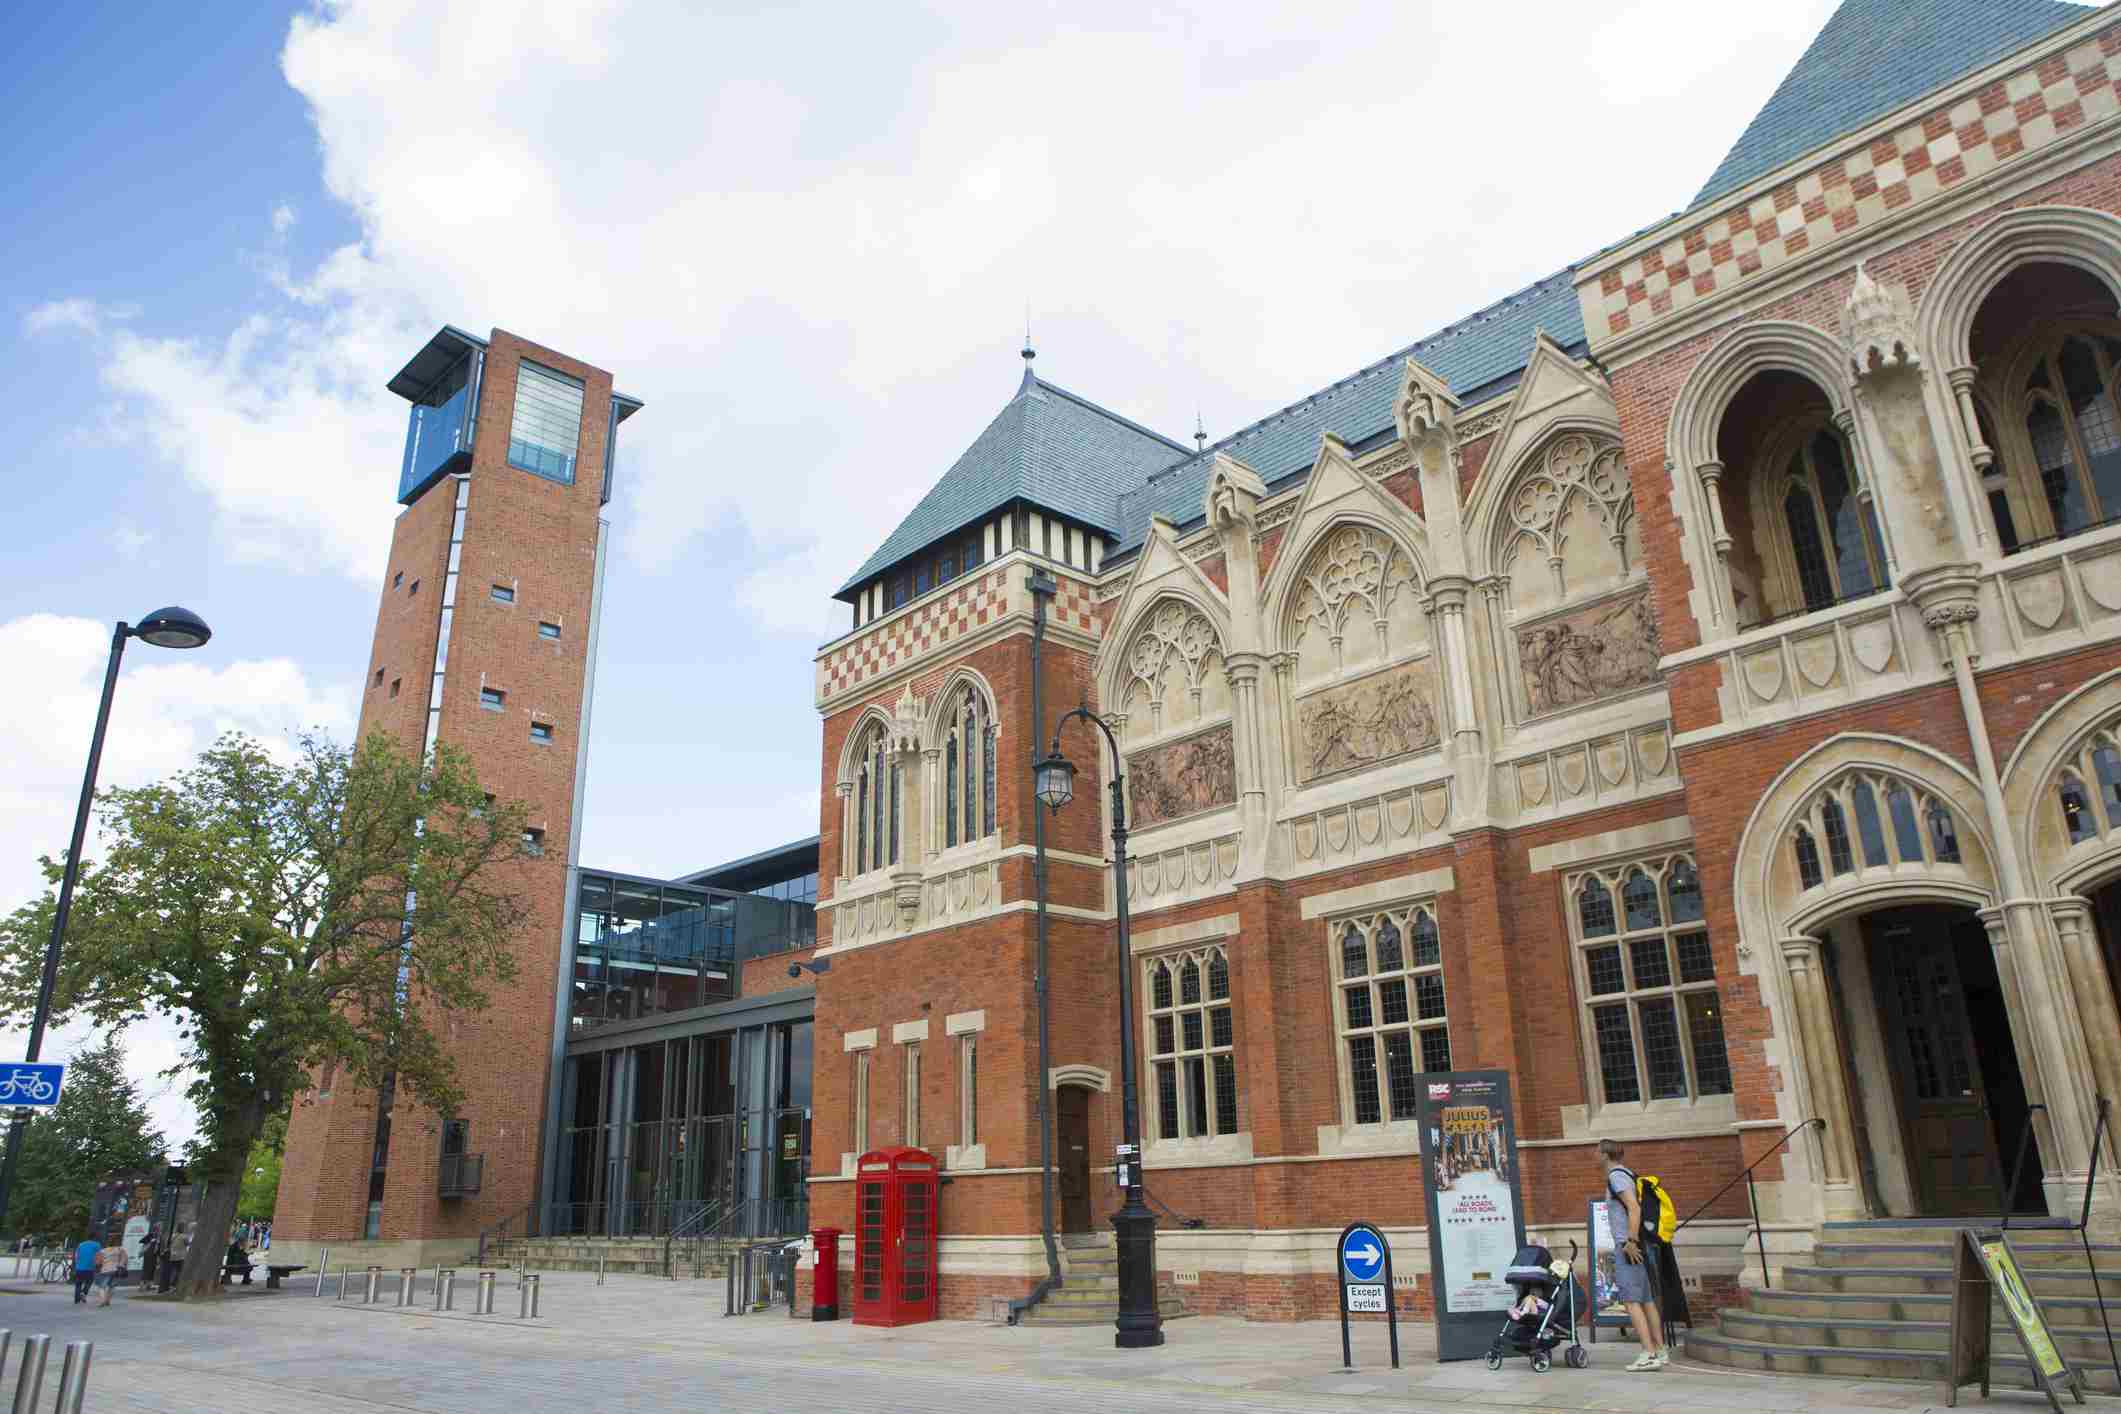 Royal Shakespeare Company Theatre The Old and New RSC Theatre